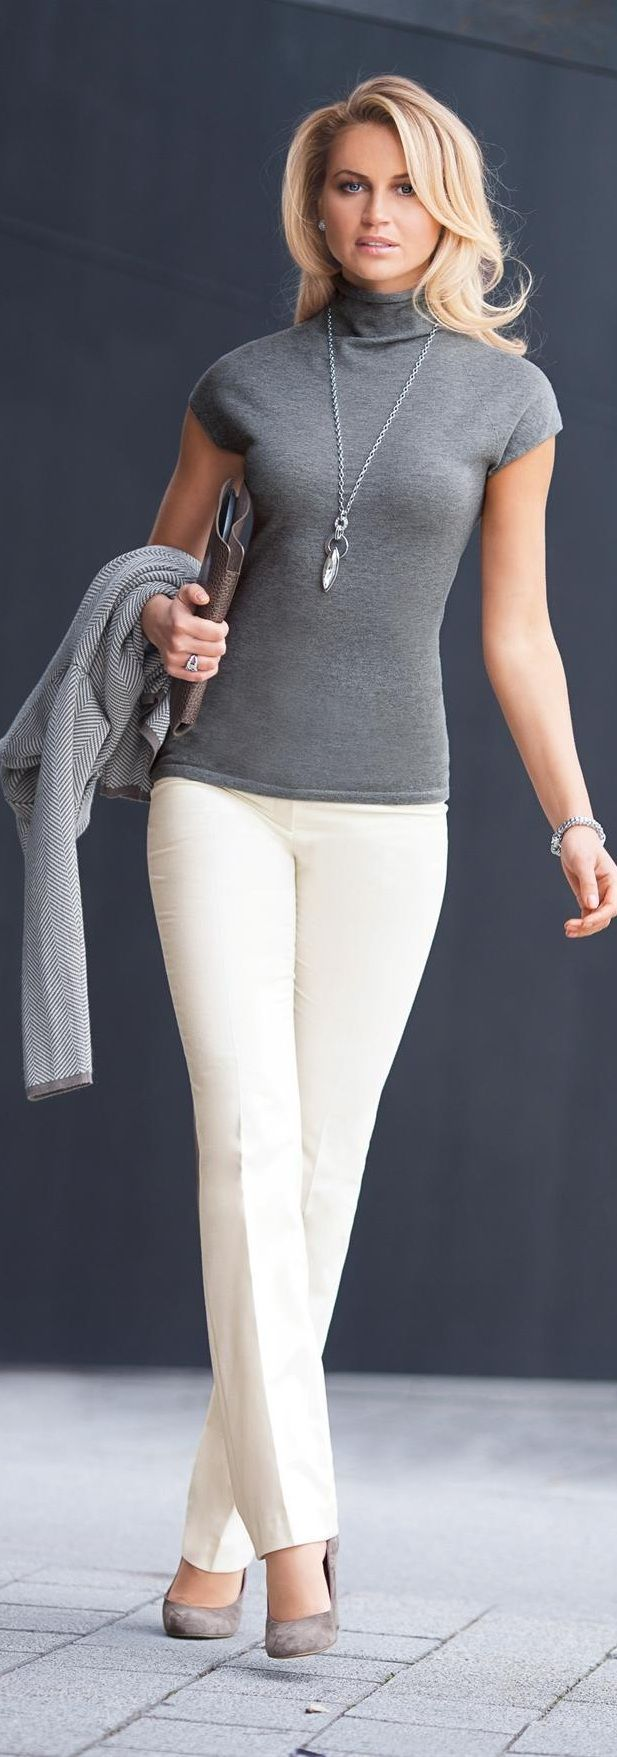 Excellent Here We Provide Ladies Fashion Jeans  They Hide The Shape Of Women But Also Cause Unflattering SilhouettesThey Came With The New Hiphop Culture And Was Of Rappers To See To Groupies, Teenagers And Hollywood Stars White Pants